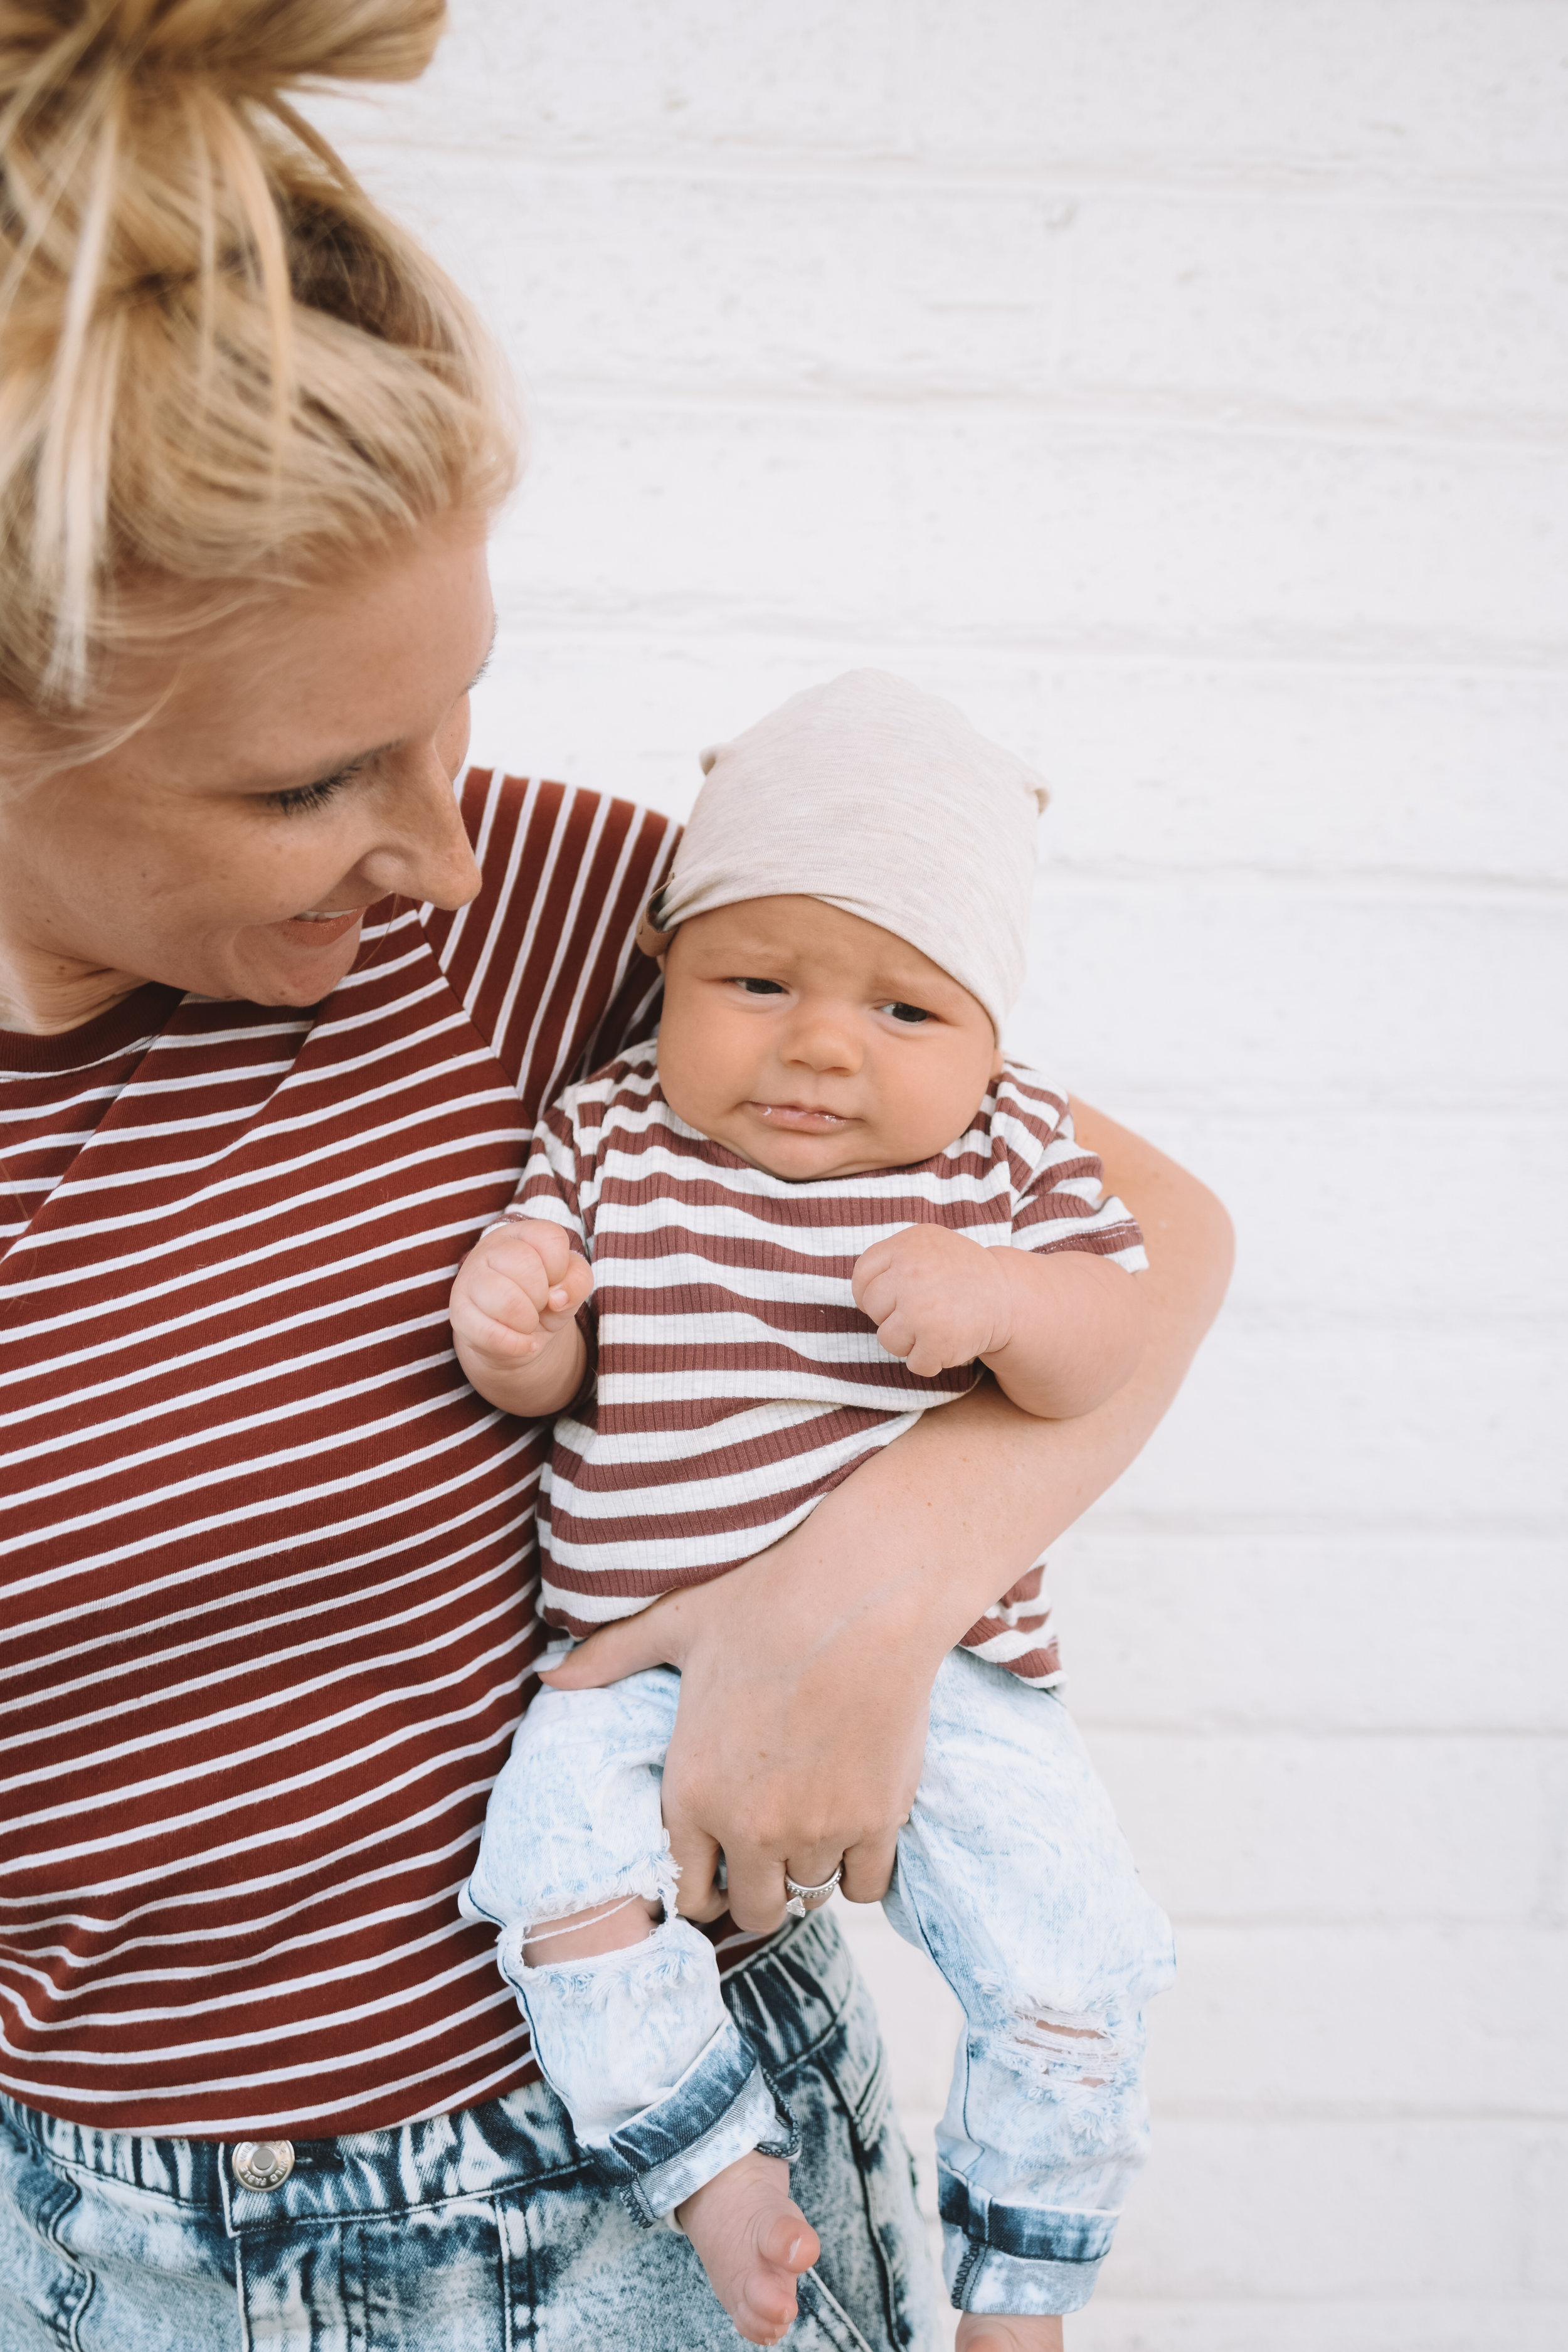 Mommy and Son Matching Clothes - The Overwhelmed Mommy Blogger